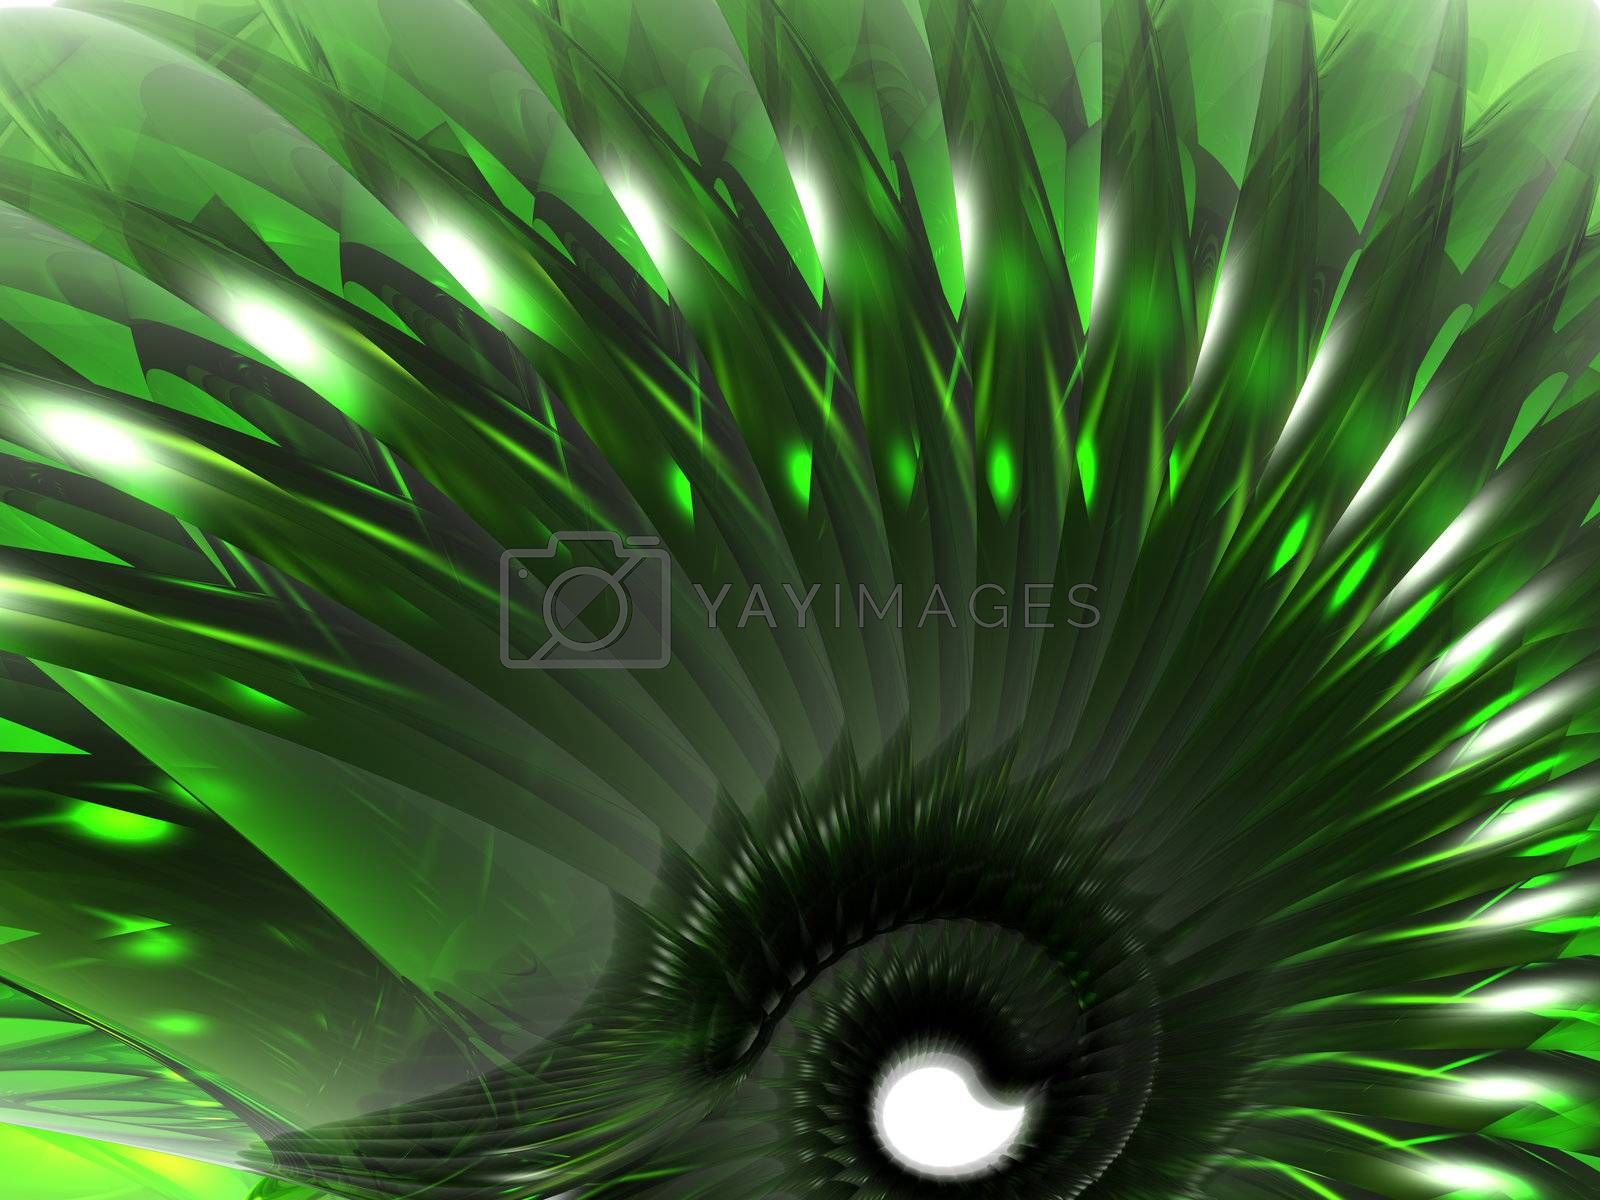 abstract green swirl thing - 3d illustration